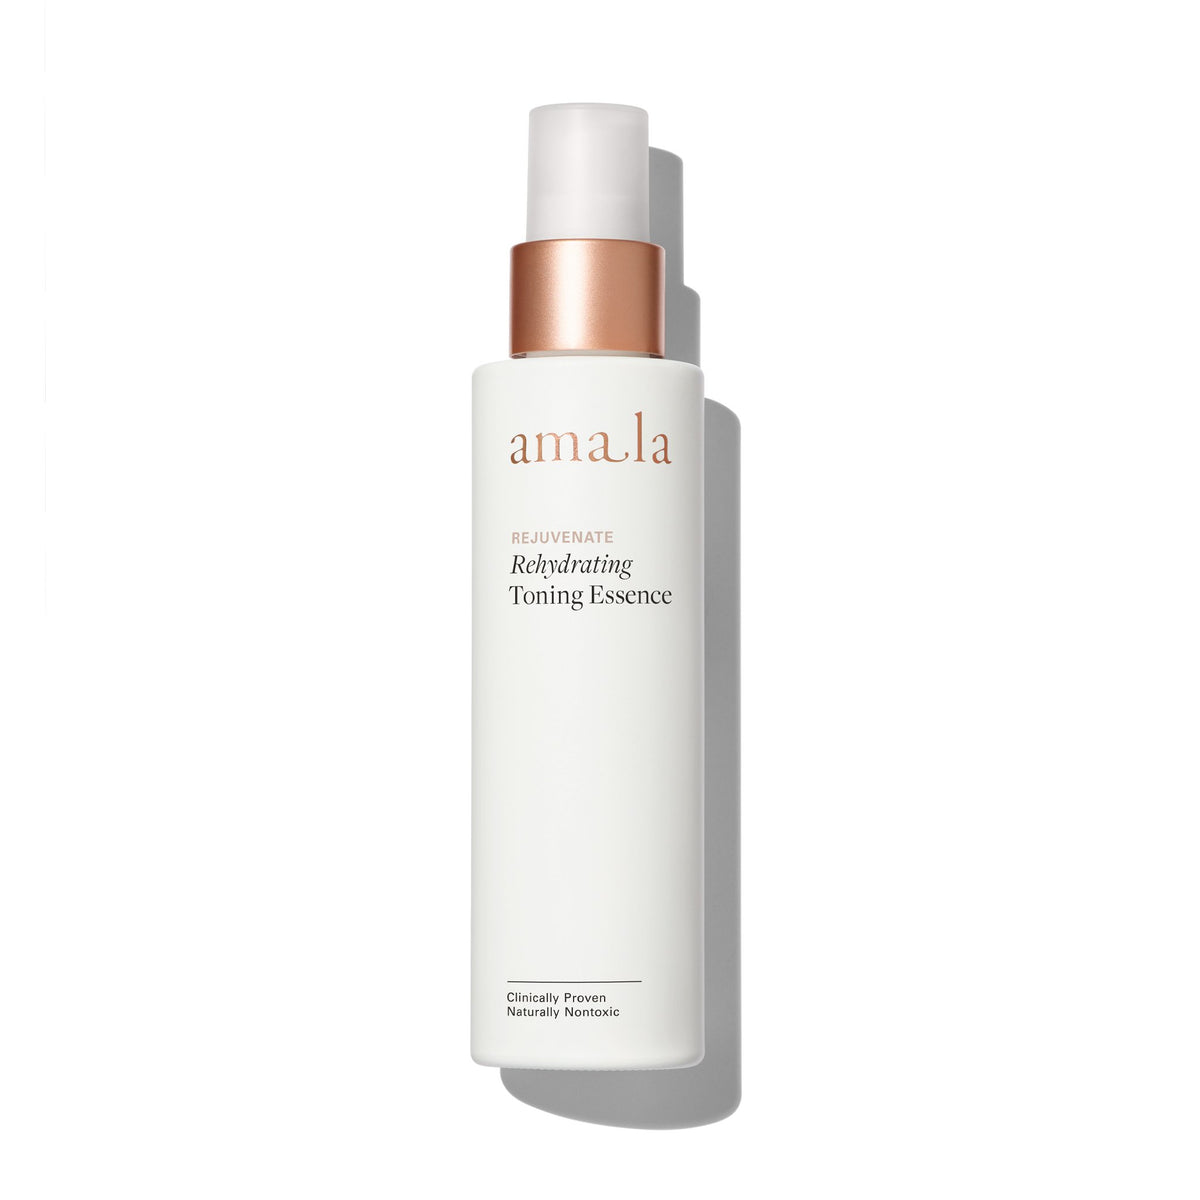 Rehydrating Toning Essence